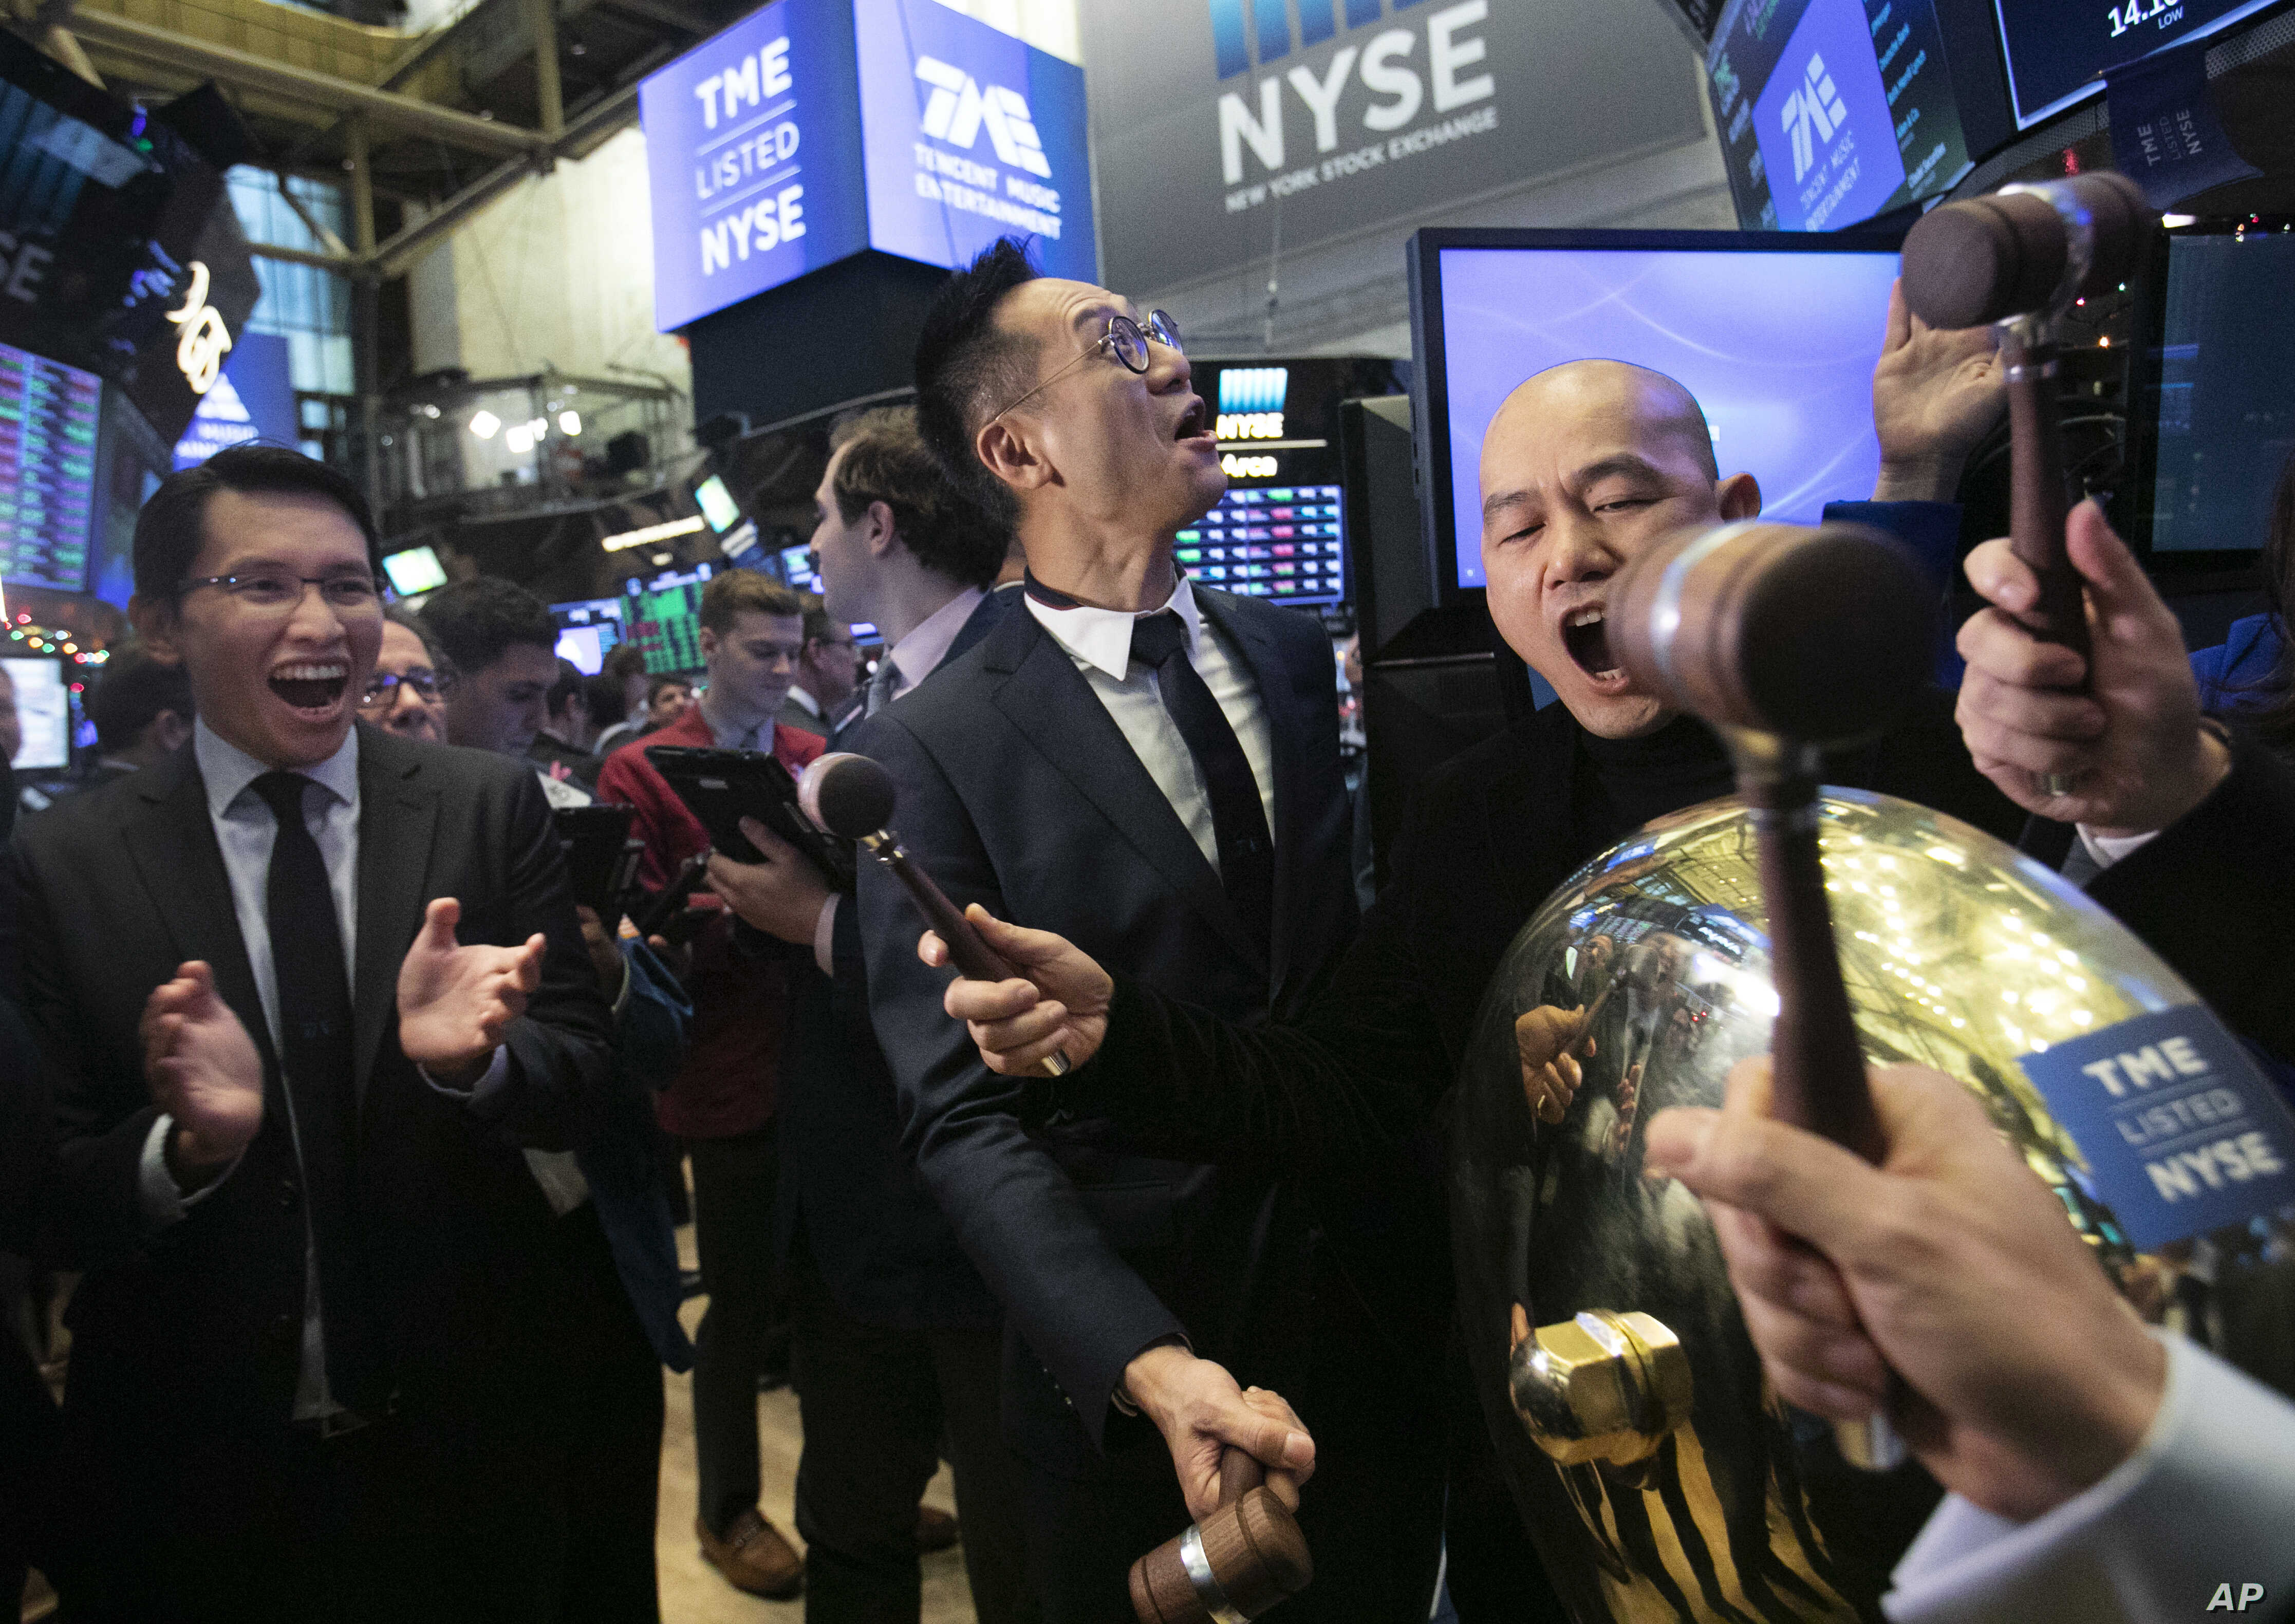 Tao Sang Tong (C), Chairman of Tencent Music Entertainment, and Co-President Guomin Xie (R) strike the bell at the New York Stock Exchange to mark the Chinese company's IPO, Dec. 12, 2018.